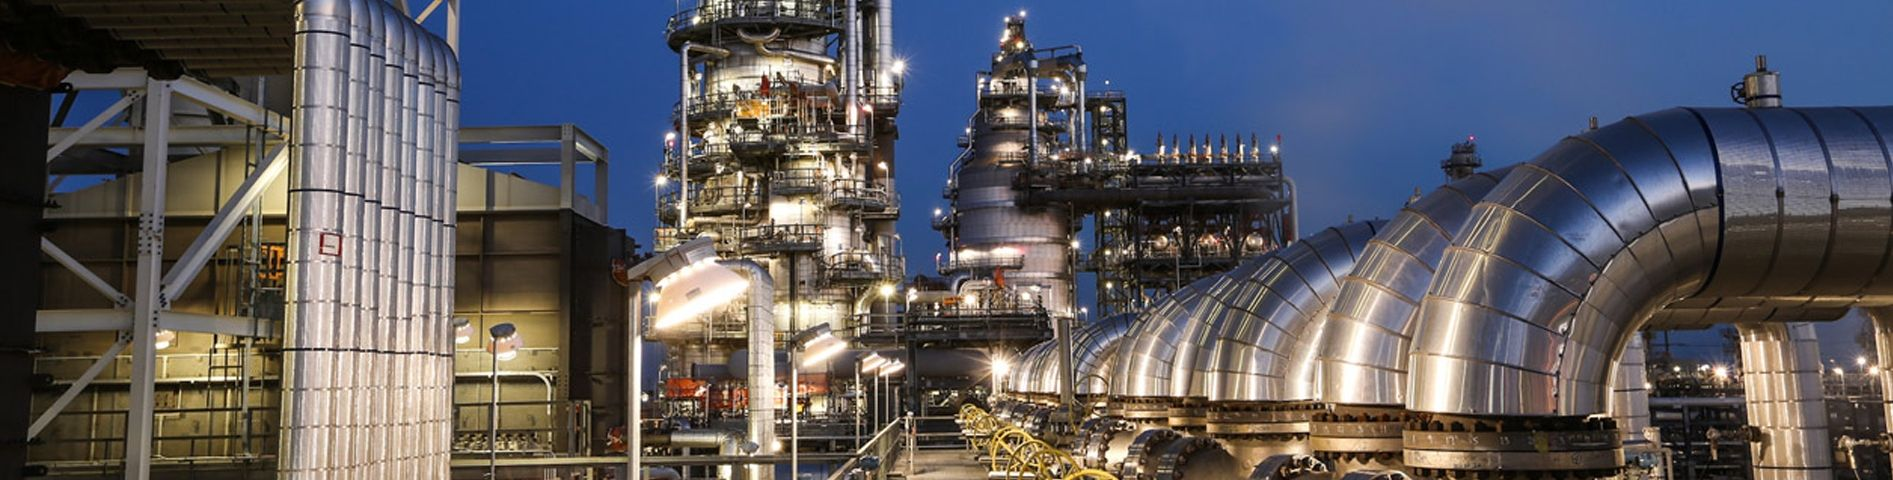 Refinery Turnaround, Vapor Control & Degassing | Envent Corporation